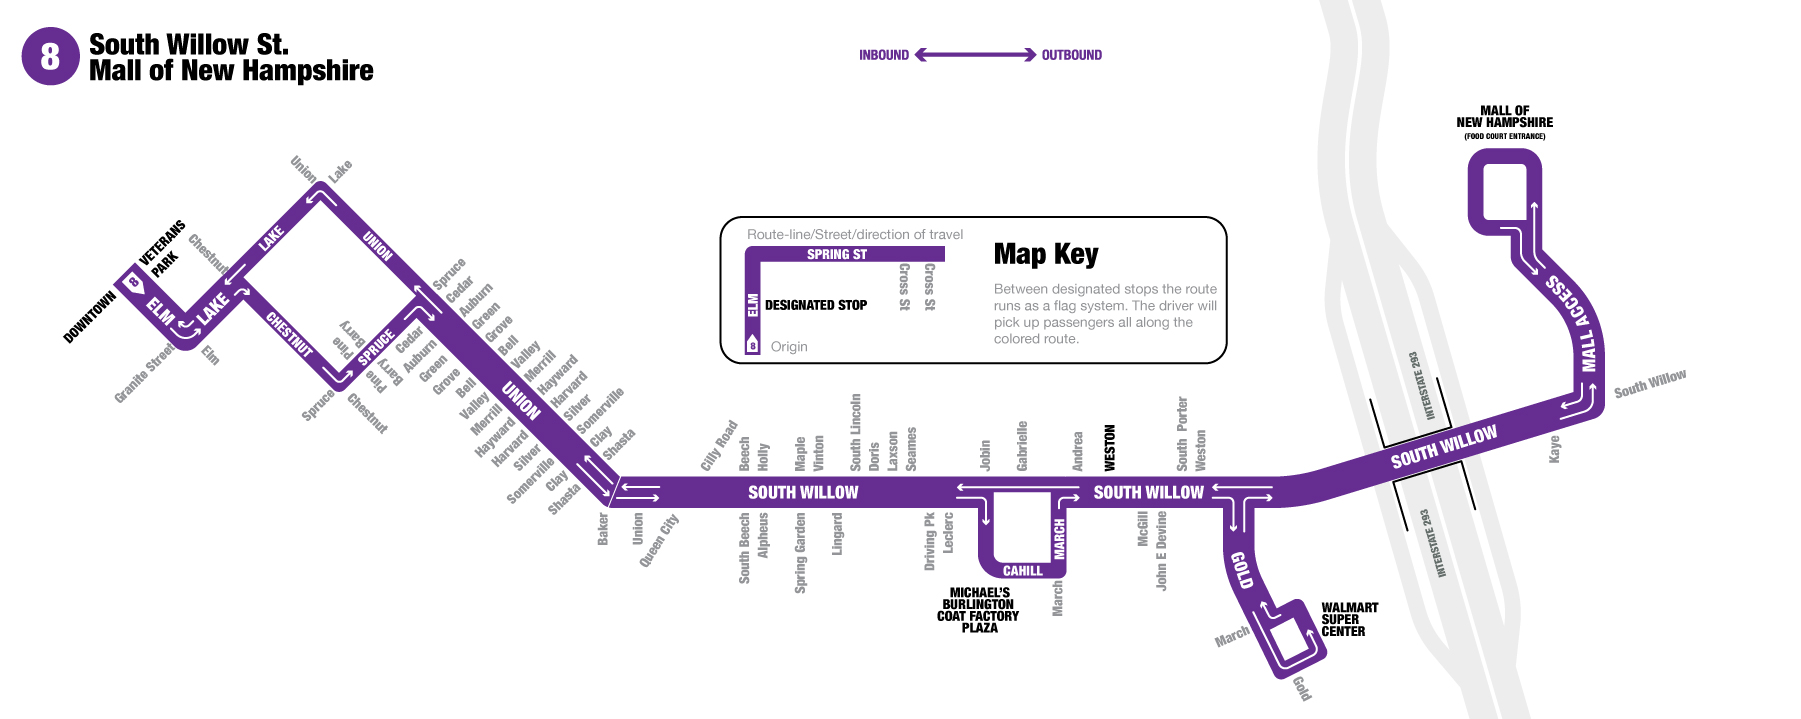 Route 8 | Manchester Transit Authority